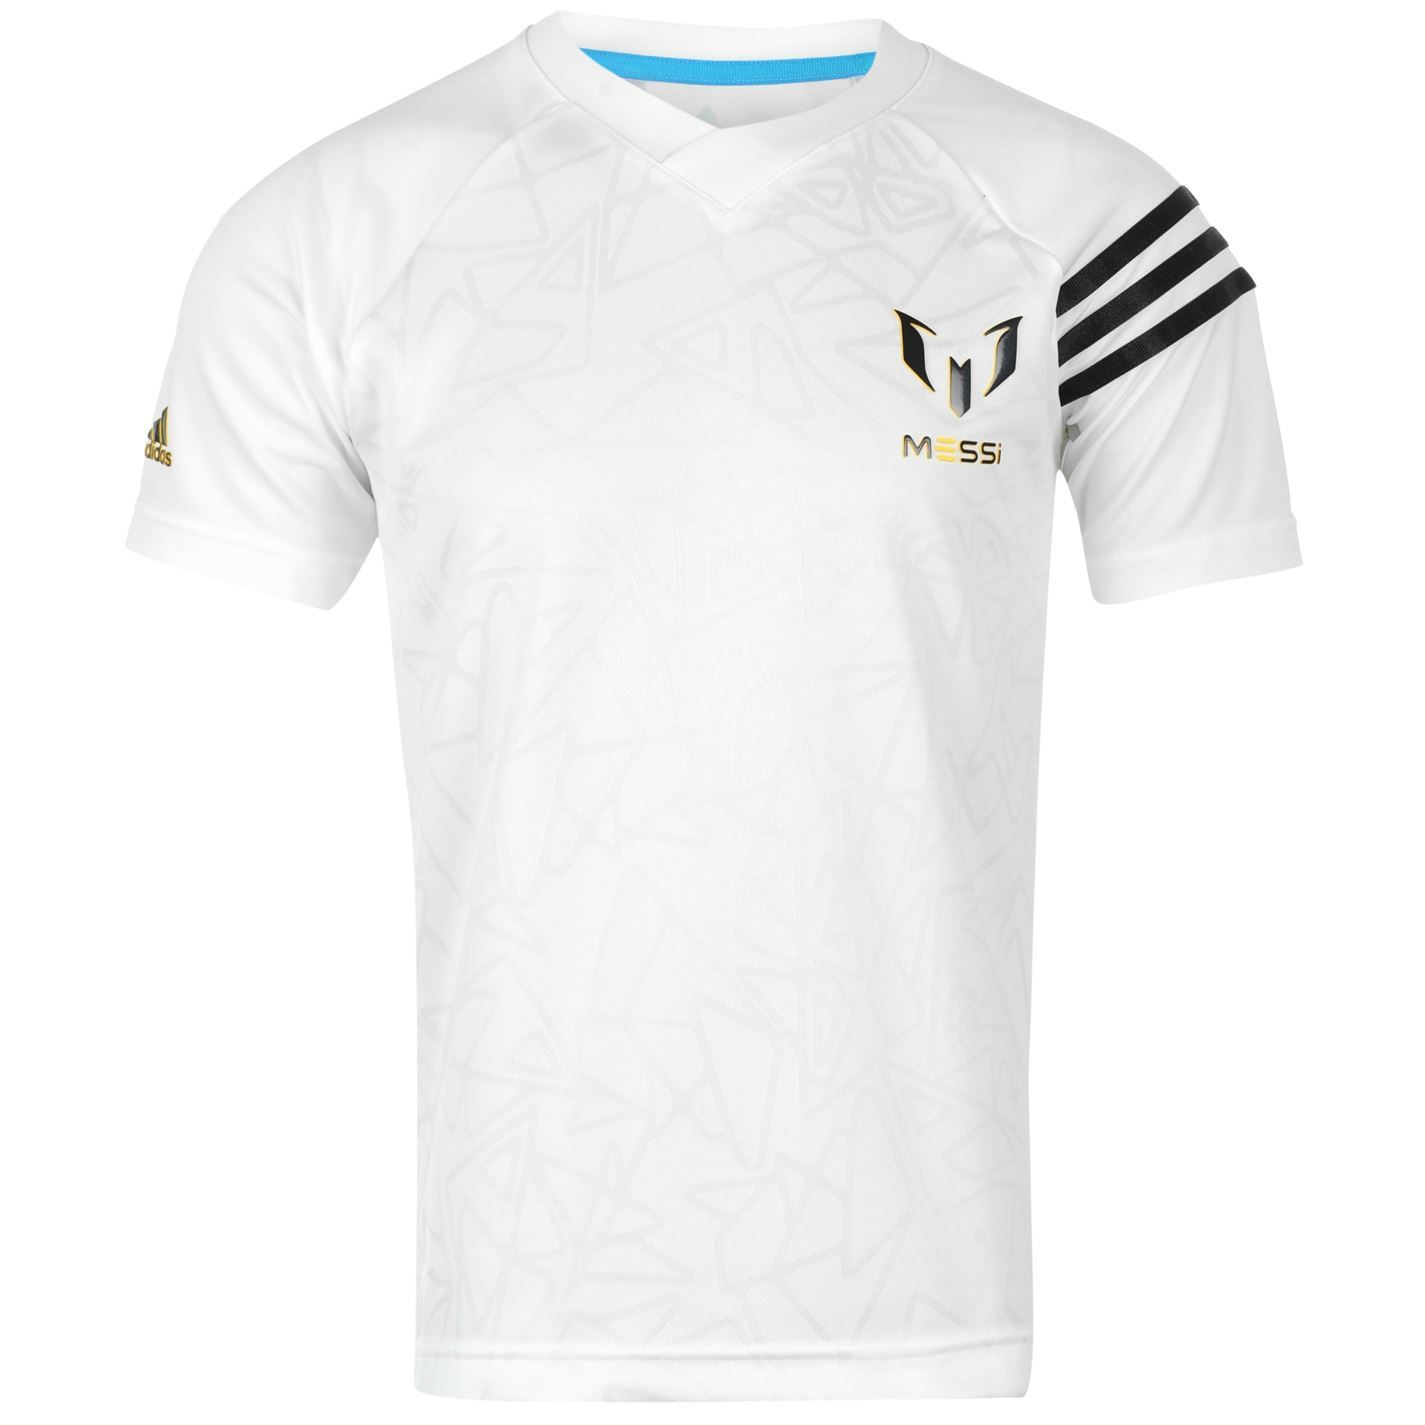 94ef62b381a Buy adidas t shirt kids cheap > OFF60% Discounted